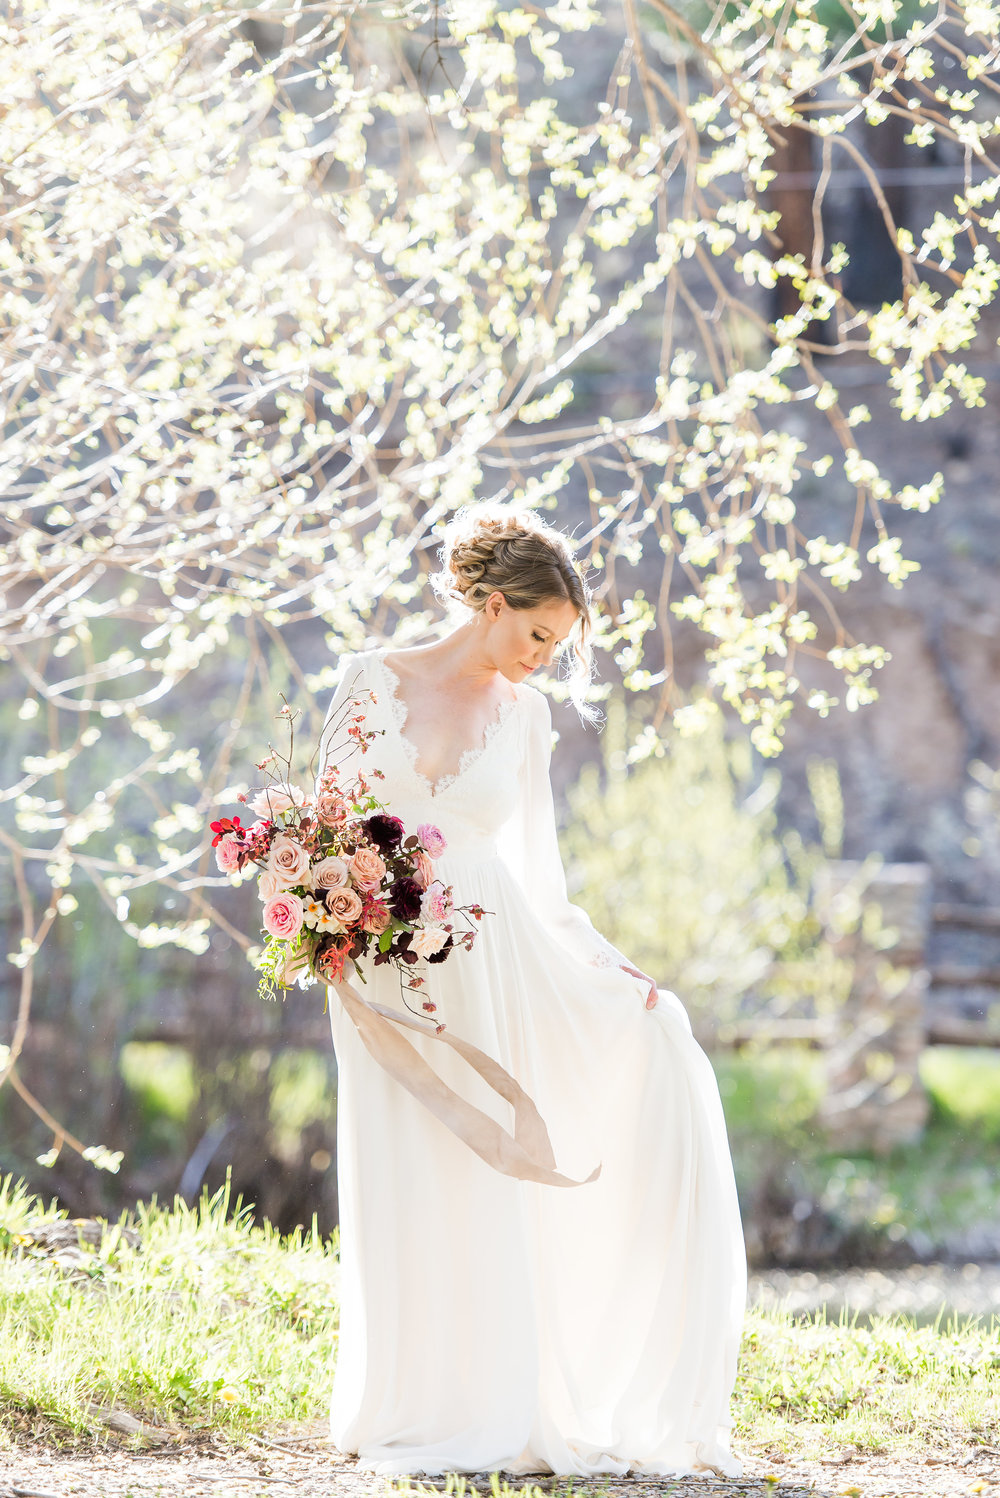 Published in Rocky Mountain Bride Magazine 2017  Venue |  Brush Ranch River Lodge  Planning | Just Lovely Weddings Florals |  Renegade Floral by Melissa Paquin ... Hair + Makeup |  C. Johnson Makeup  Design, Styling + Rentals |  Darling Details Vintage Decor Rental Co.  Cake |  Maggie's Cakes  Dress | Leanne Marshall at  Emma & Grace Bridal Studio  Suit |  Macy's  Jewelry |  Ooh Aah Jewelry Albuquerque  Vow Books | Hello Jori Photography |  Julie Haider Photography + Design  Models | Kristen + Collin